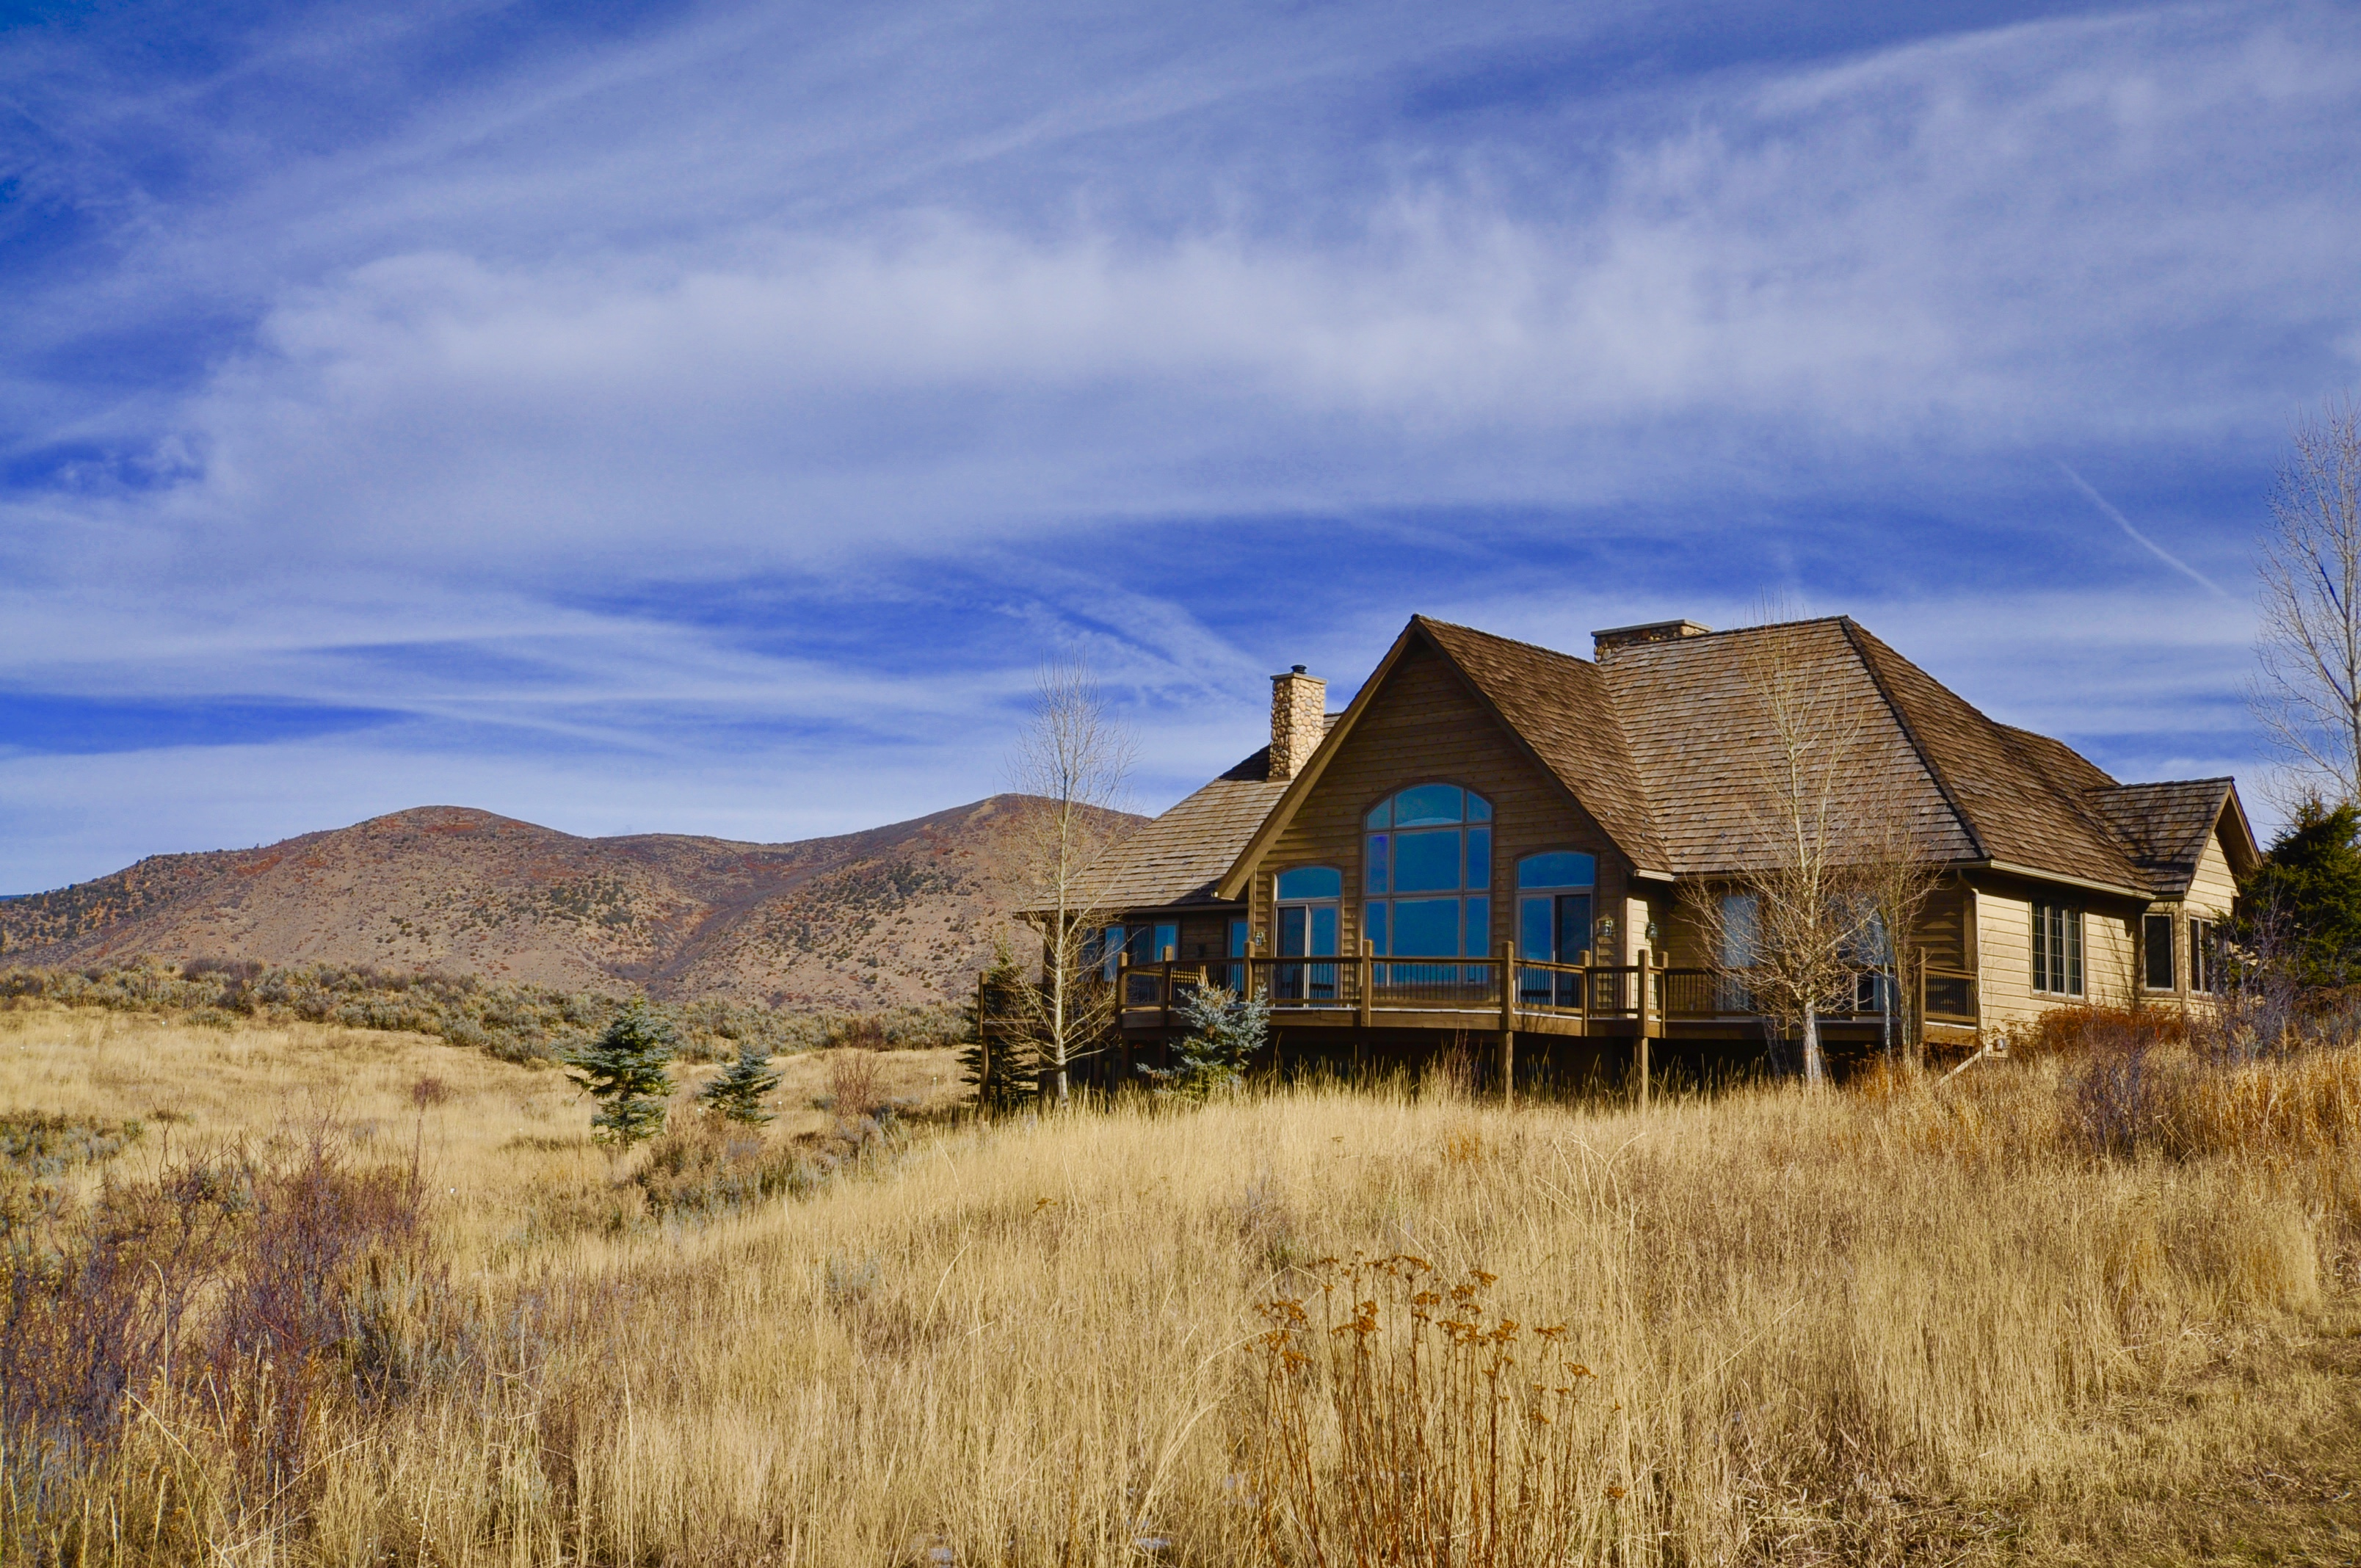 Single Family Home for Sale at Lazy O Ranch 1500 Lazy O Road Snowmass, Colorado 81654 United States